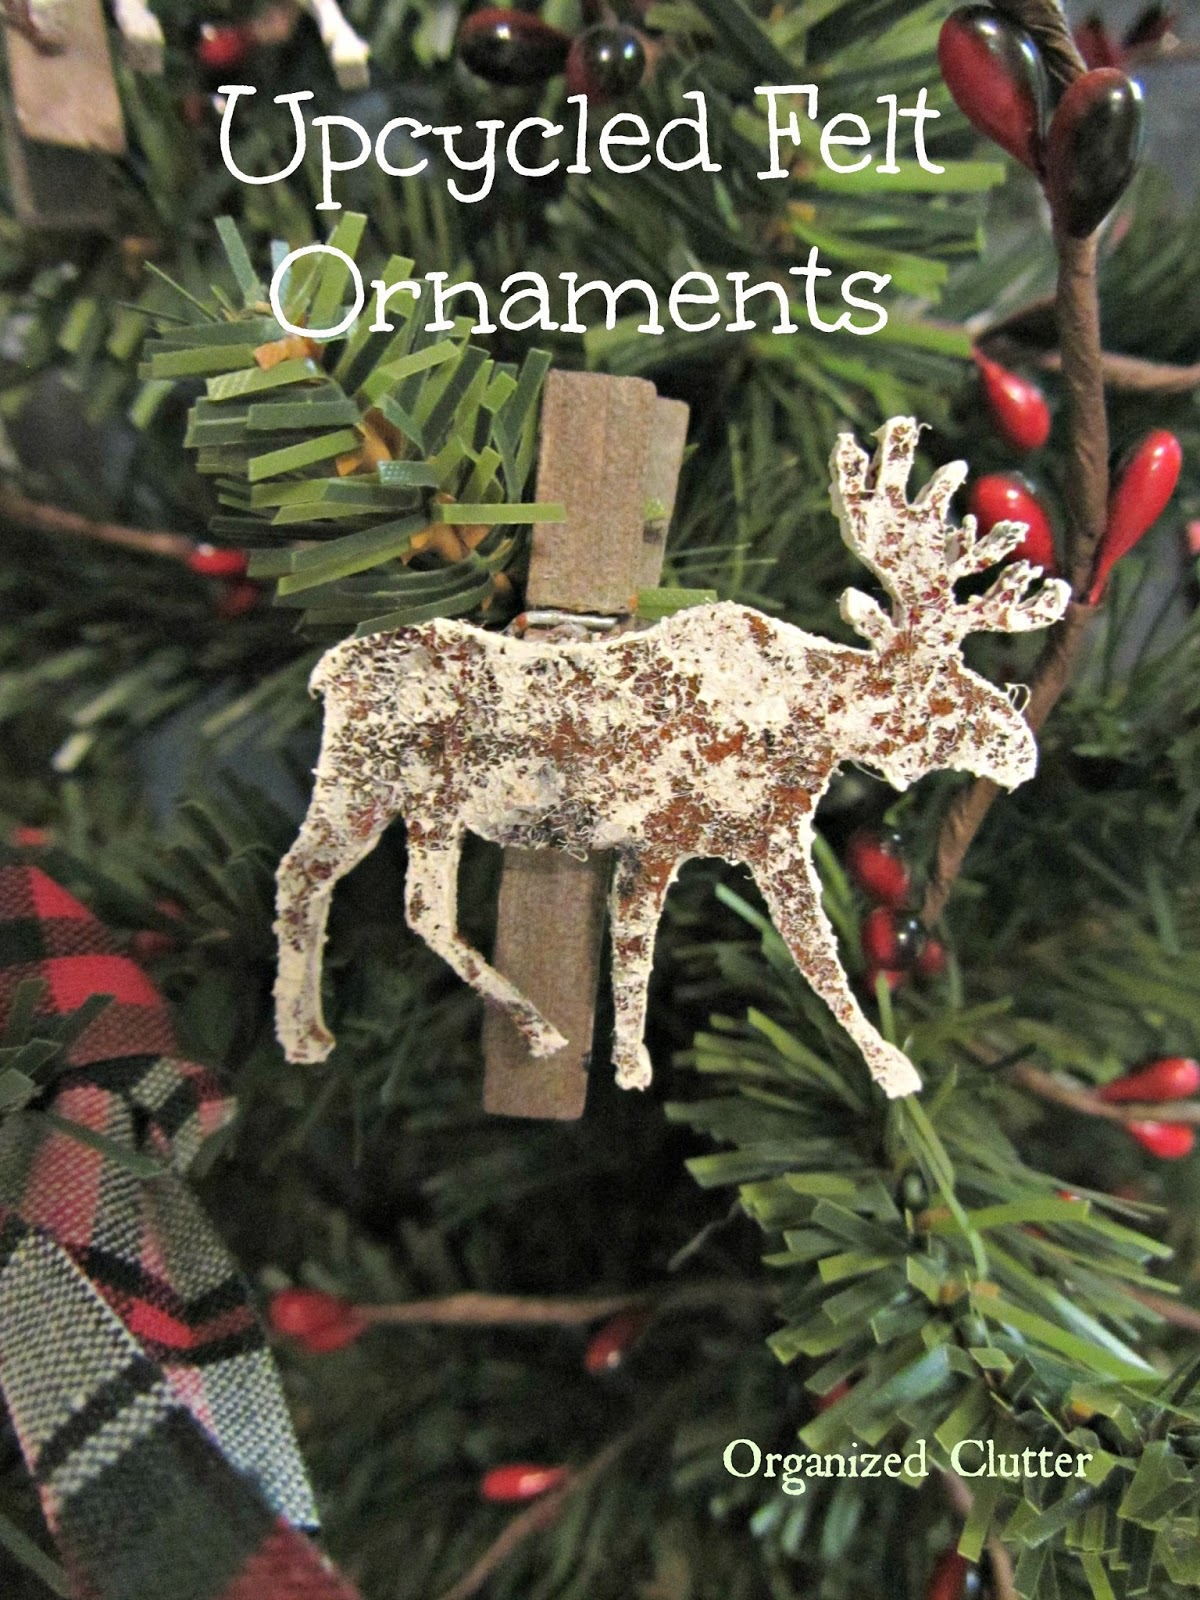 Upcycled Big Box Store Ornaments www.organizedclutterqueen.blogspot.com